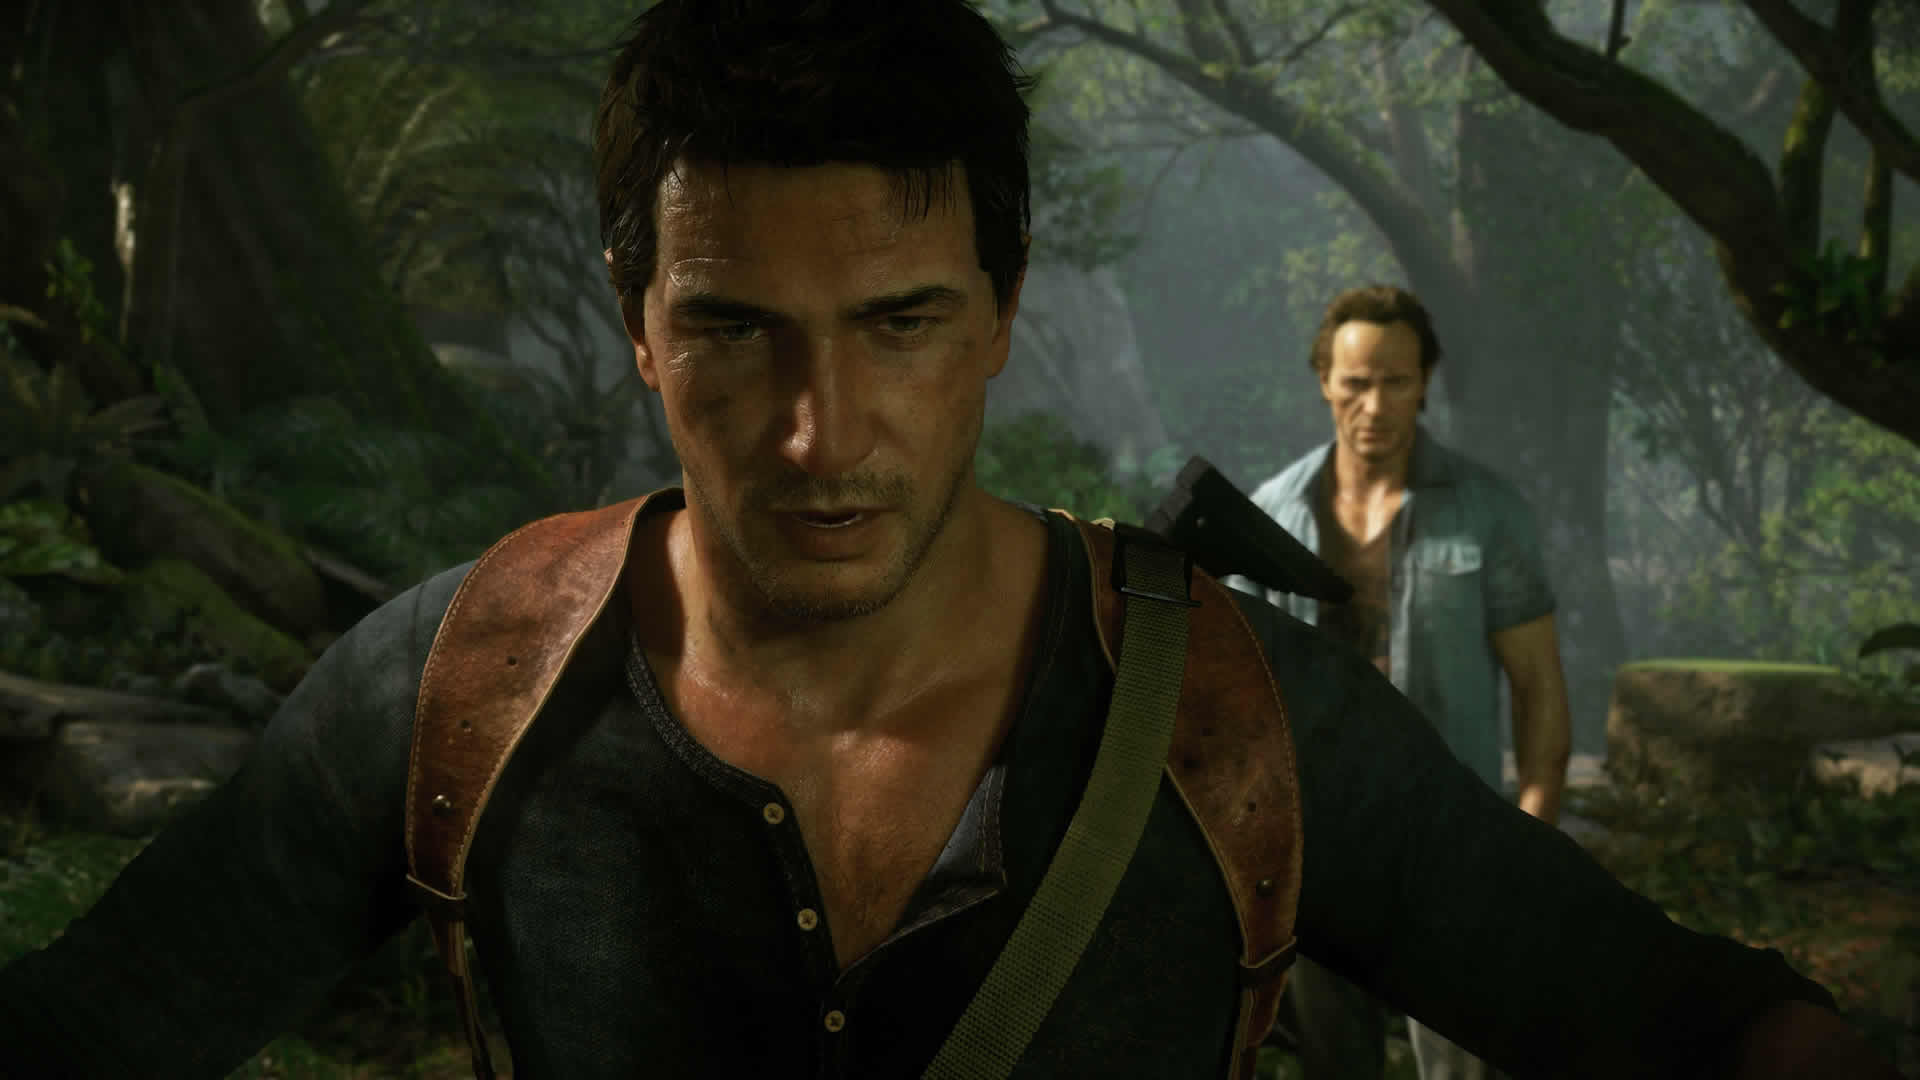 uncharted 4 drake close up 1421239570 Uncharted 4s Story Changed 100% After New Directors Joined